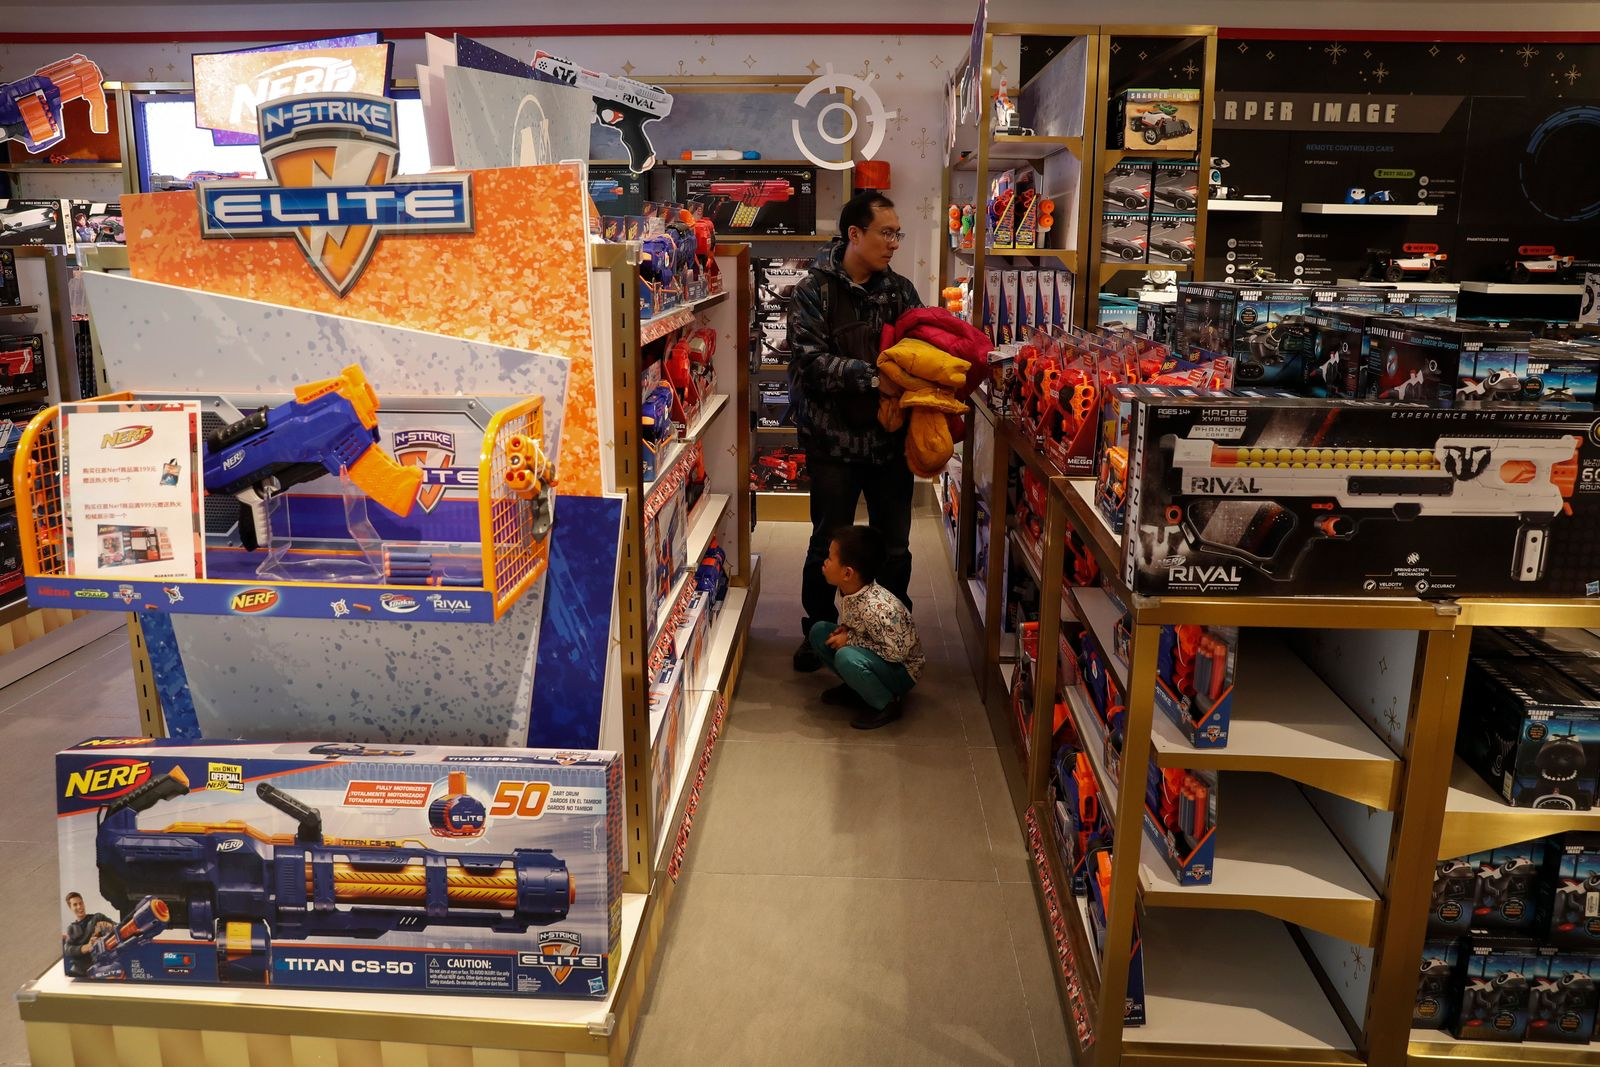 In this Saturday, Dec. 7, 2019, photo, a man and a child look at toy guns on display for sale at the American toy store FAO Schwarz at the capital city's popular shopping mall in Beijing. (AP Photo/Andy Wong)